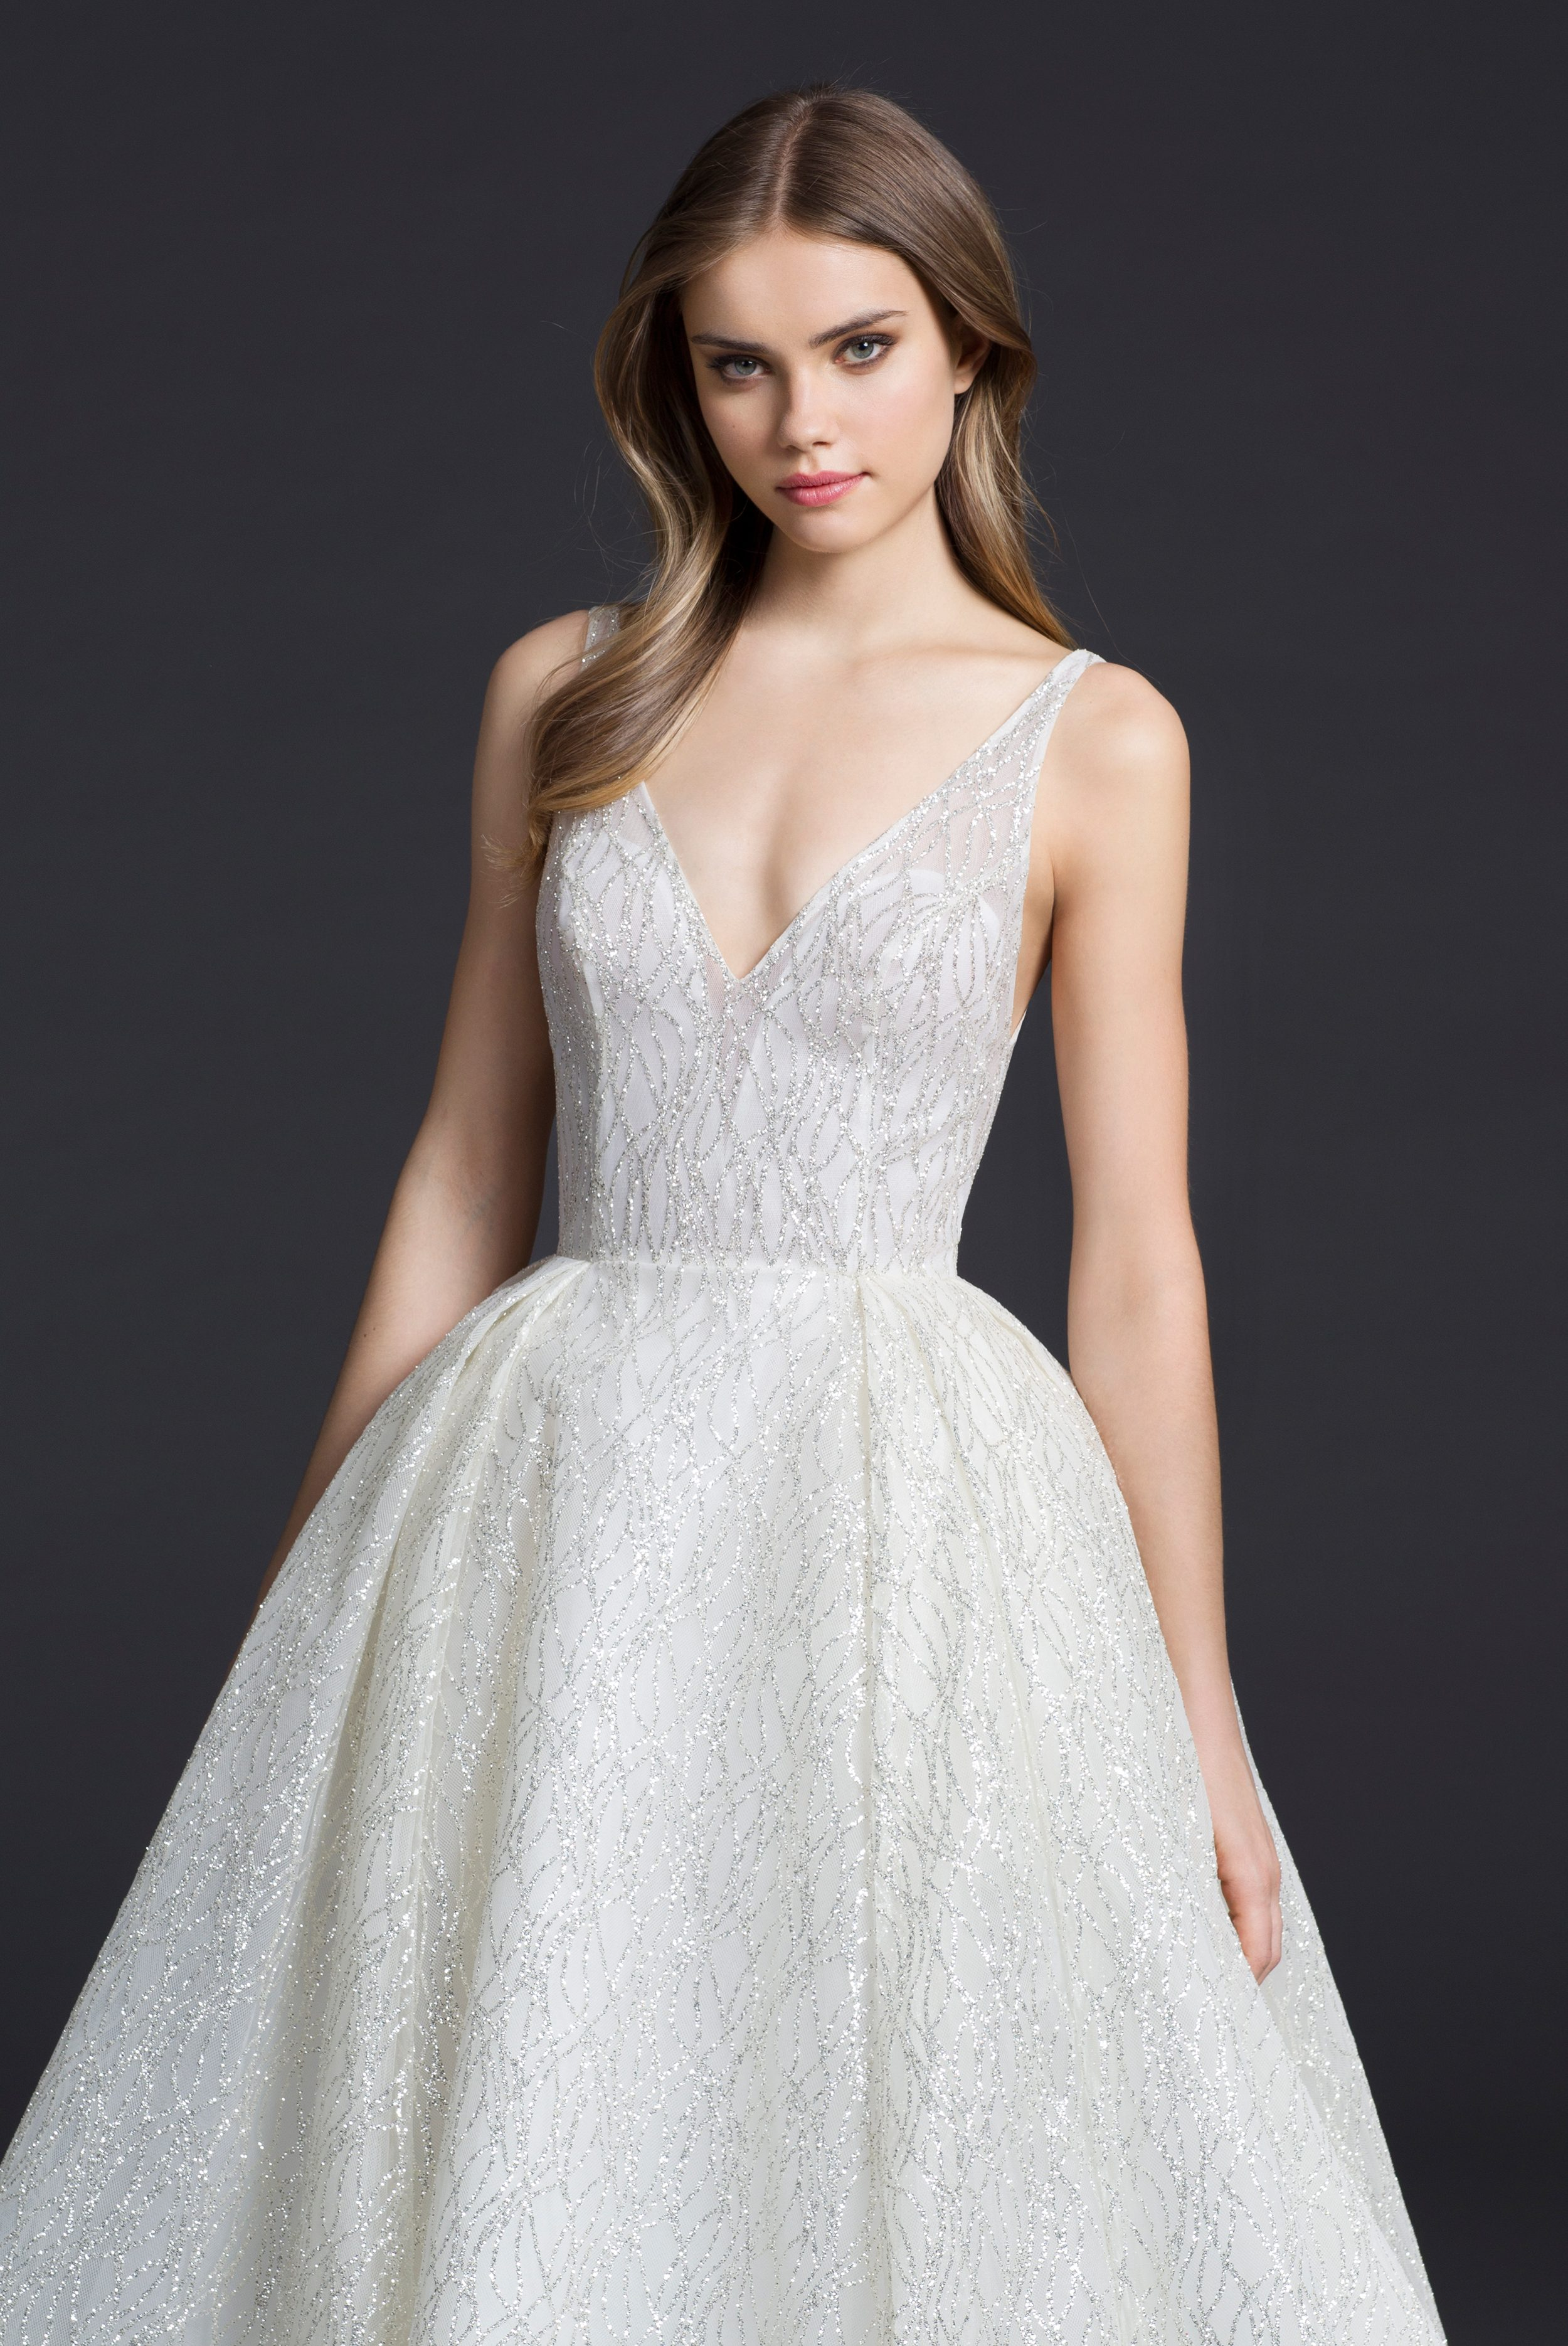 New wedding gowns from lazaro arrive at stardust stardust celebrations view junglespirit Choice Image